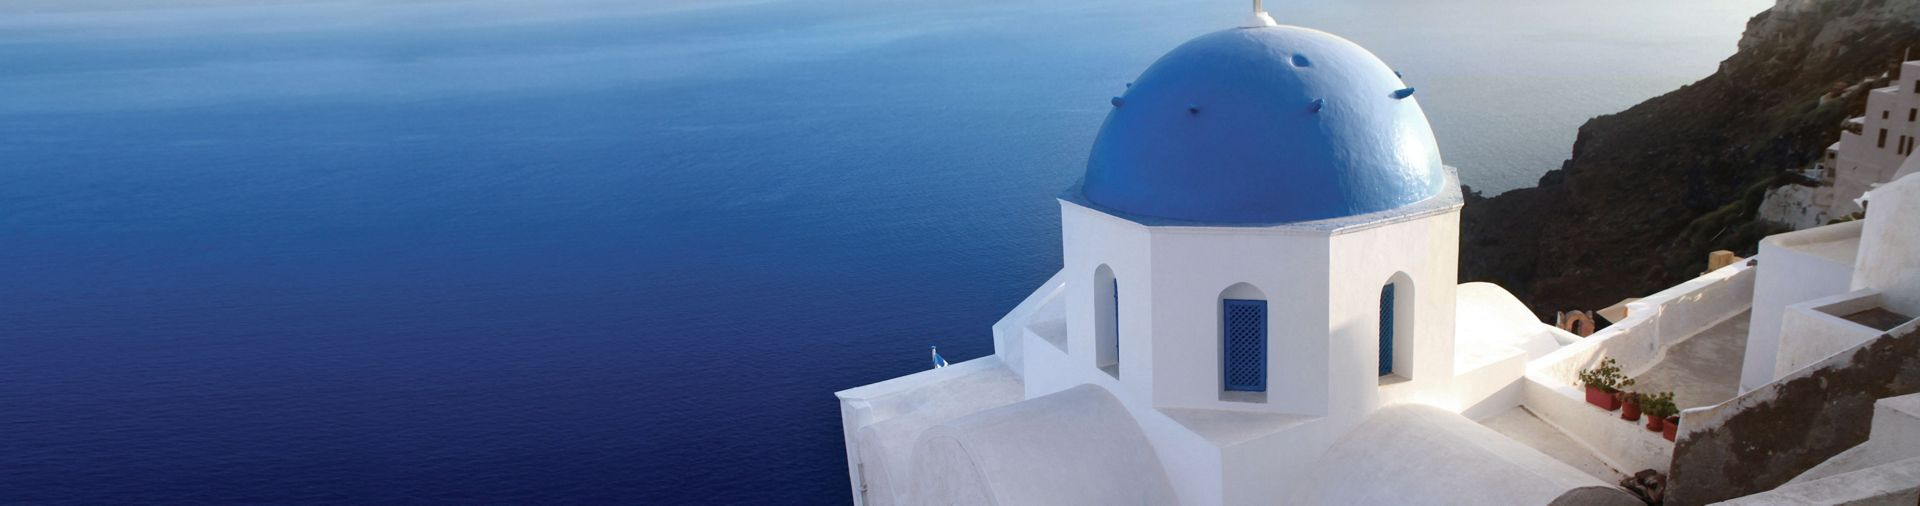 Silversea Mediterranean Luxury Cruise